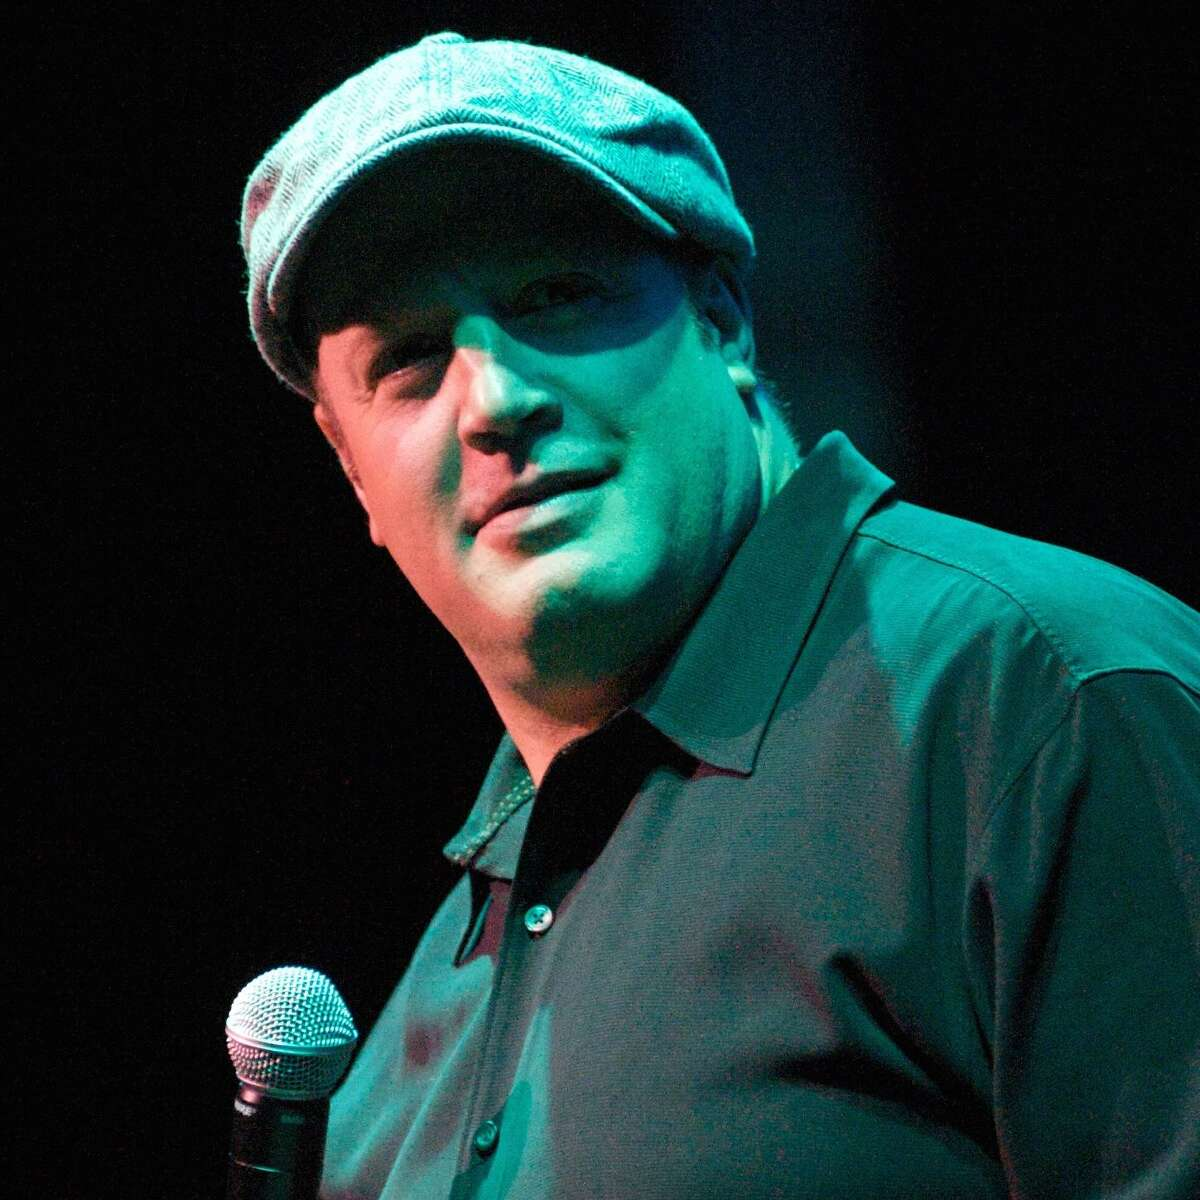 Kevin James will perform at Foxwoods at two shows on Saturday, Aug. 5.